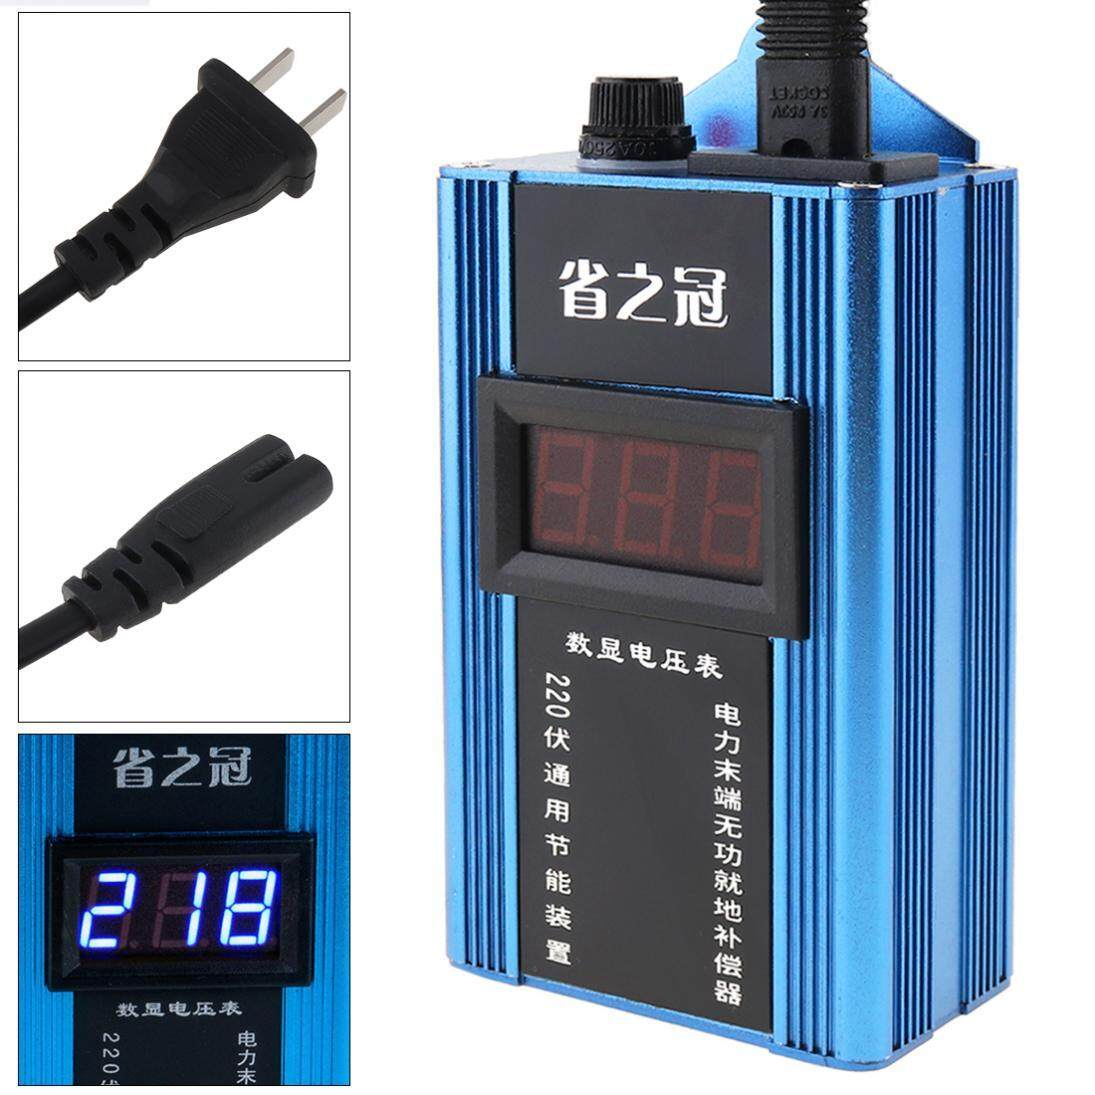 hight resolution of 80kw 110v 220v smart power saver household meter electricity saving box with electronic screen display